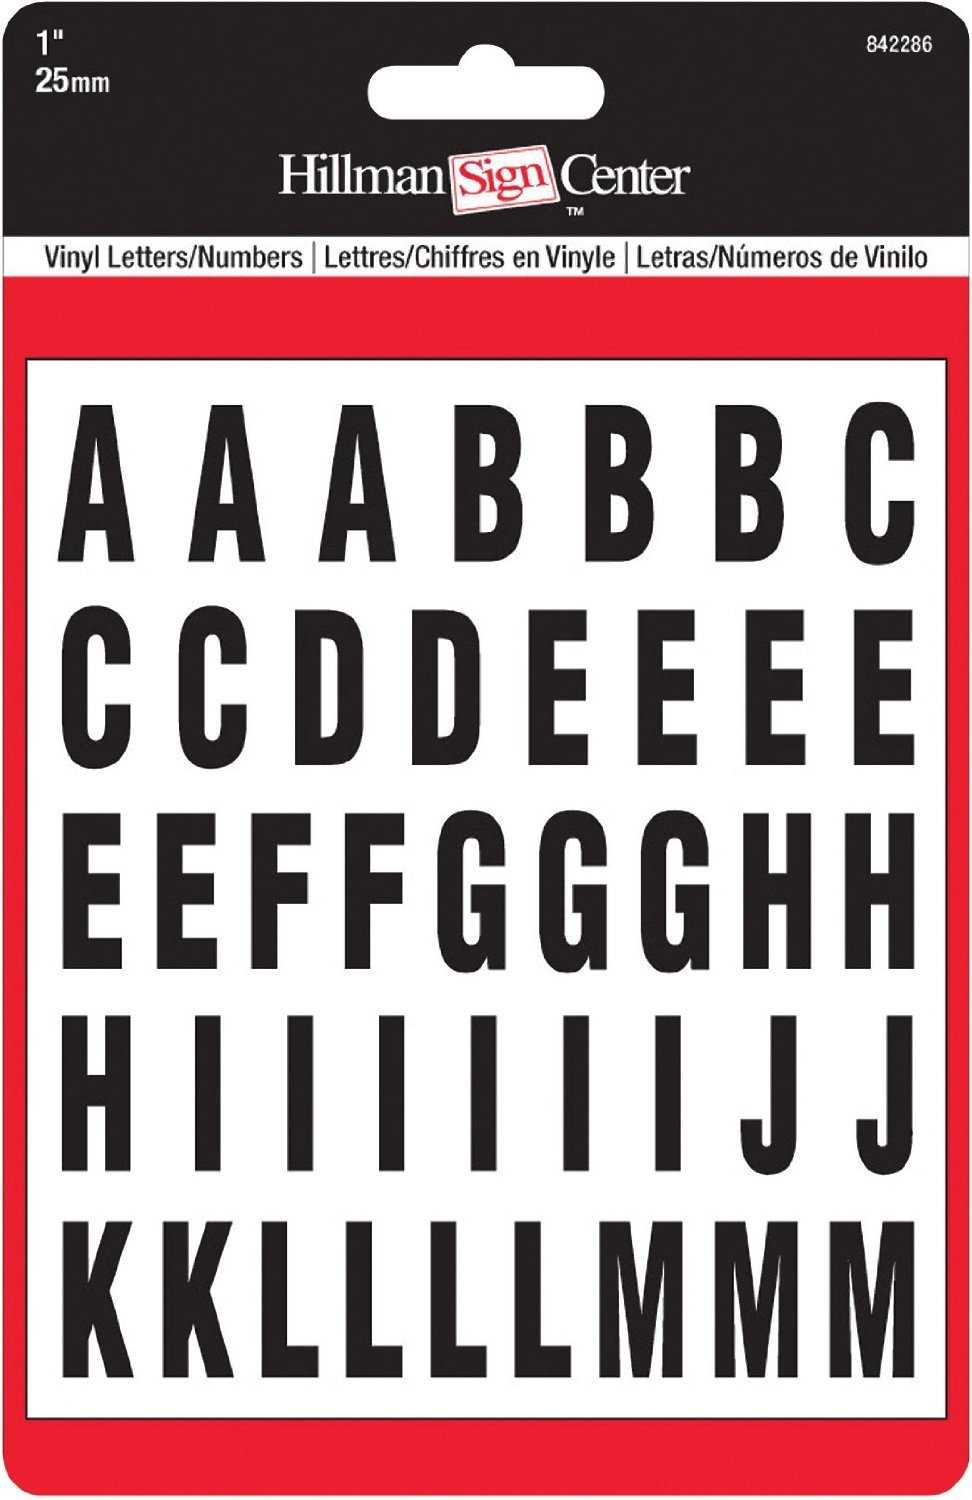 The Hillman Group 842286 1-Inch Die-Cut Letters and, Numbers Kit, Black (2 Pack)